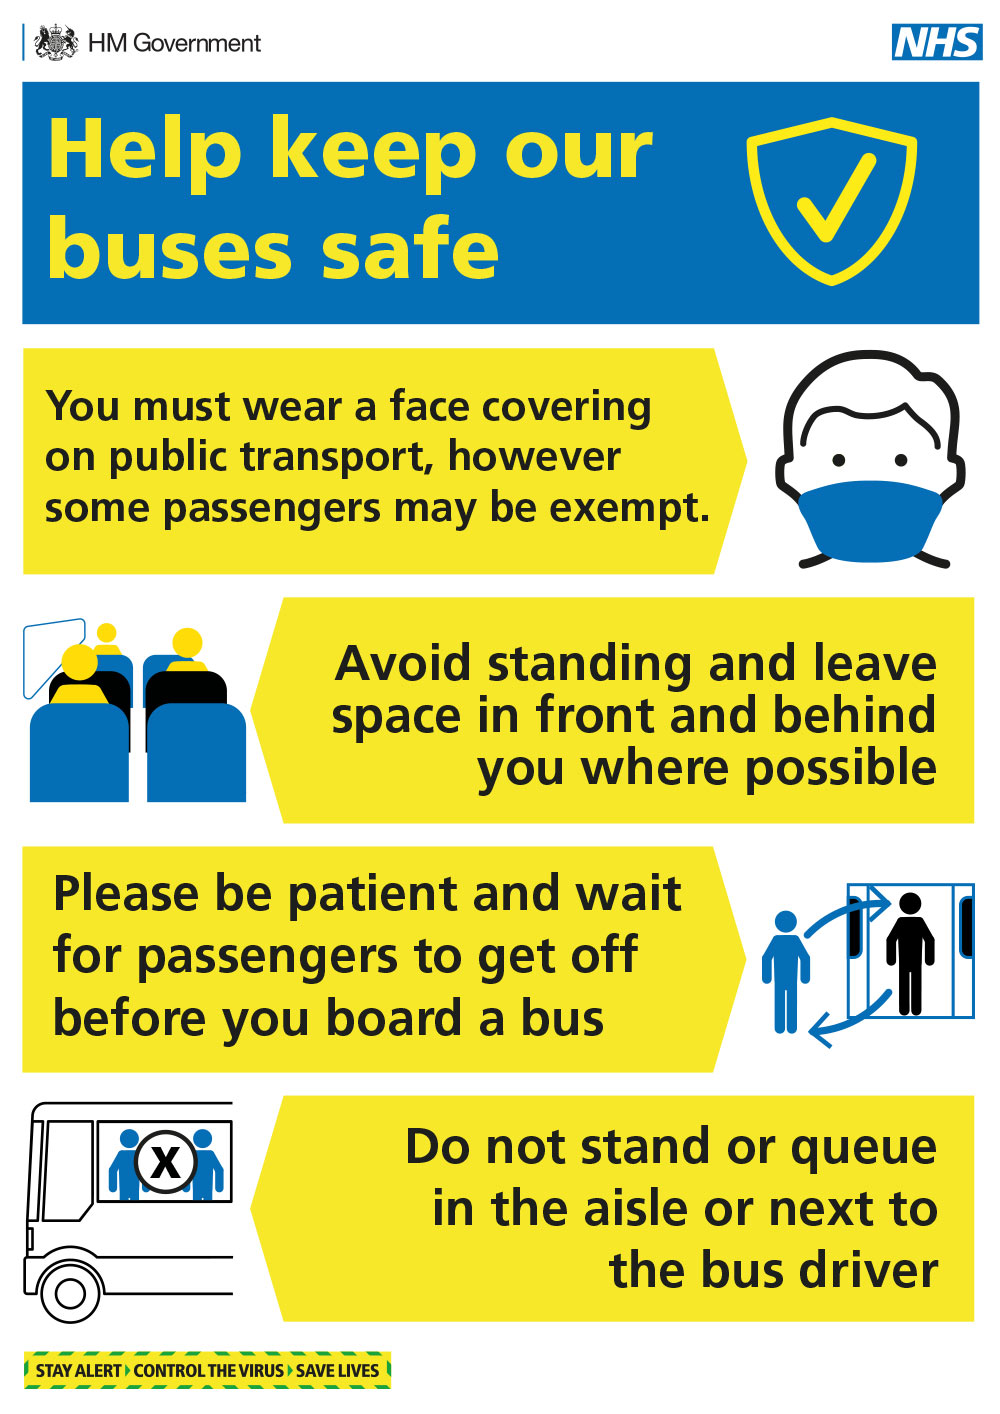 Help keep our buses safe by following this guidance: You must wear a face covering on public transport, however some passengers may be exempt. Avoid standing and leave space in front and behind you where possible. Please be patient and wait for passengers to get off before you board a bus. Do not stand or queue in the aisle or next to the bus driver.